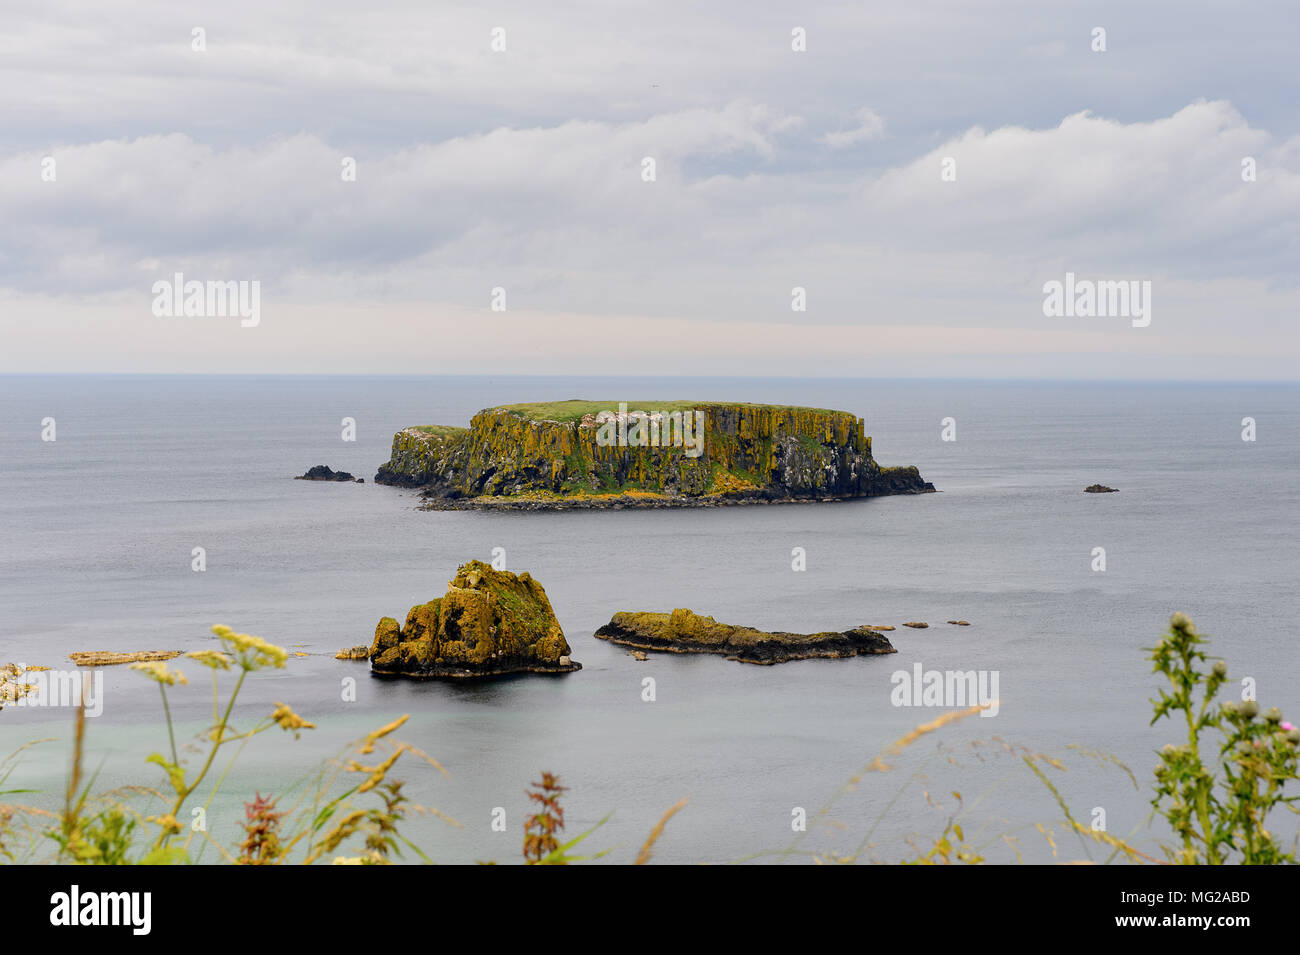 Carrick-a-Rede, Causeway Coast Route, National Trust. Northern Ireland - Stock Image